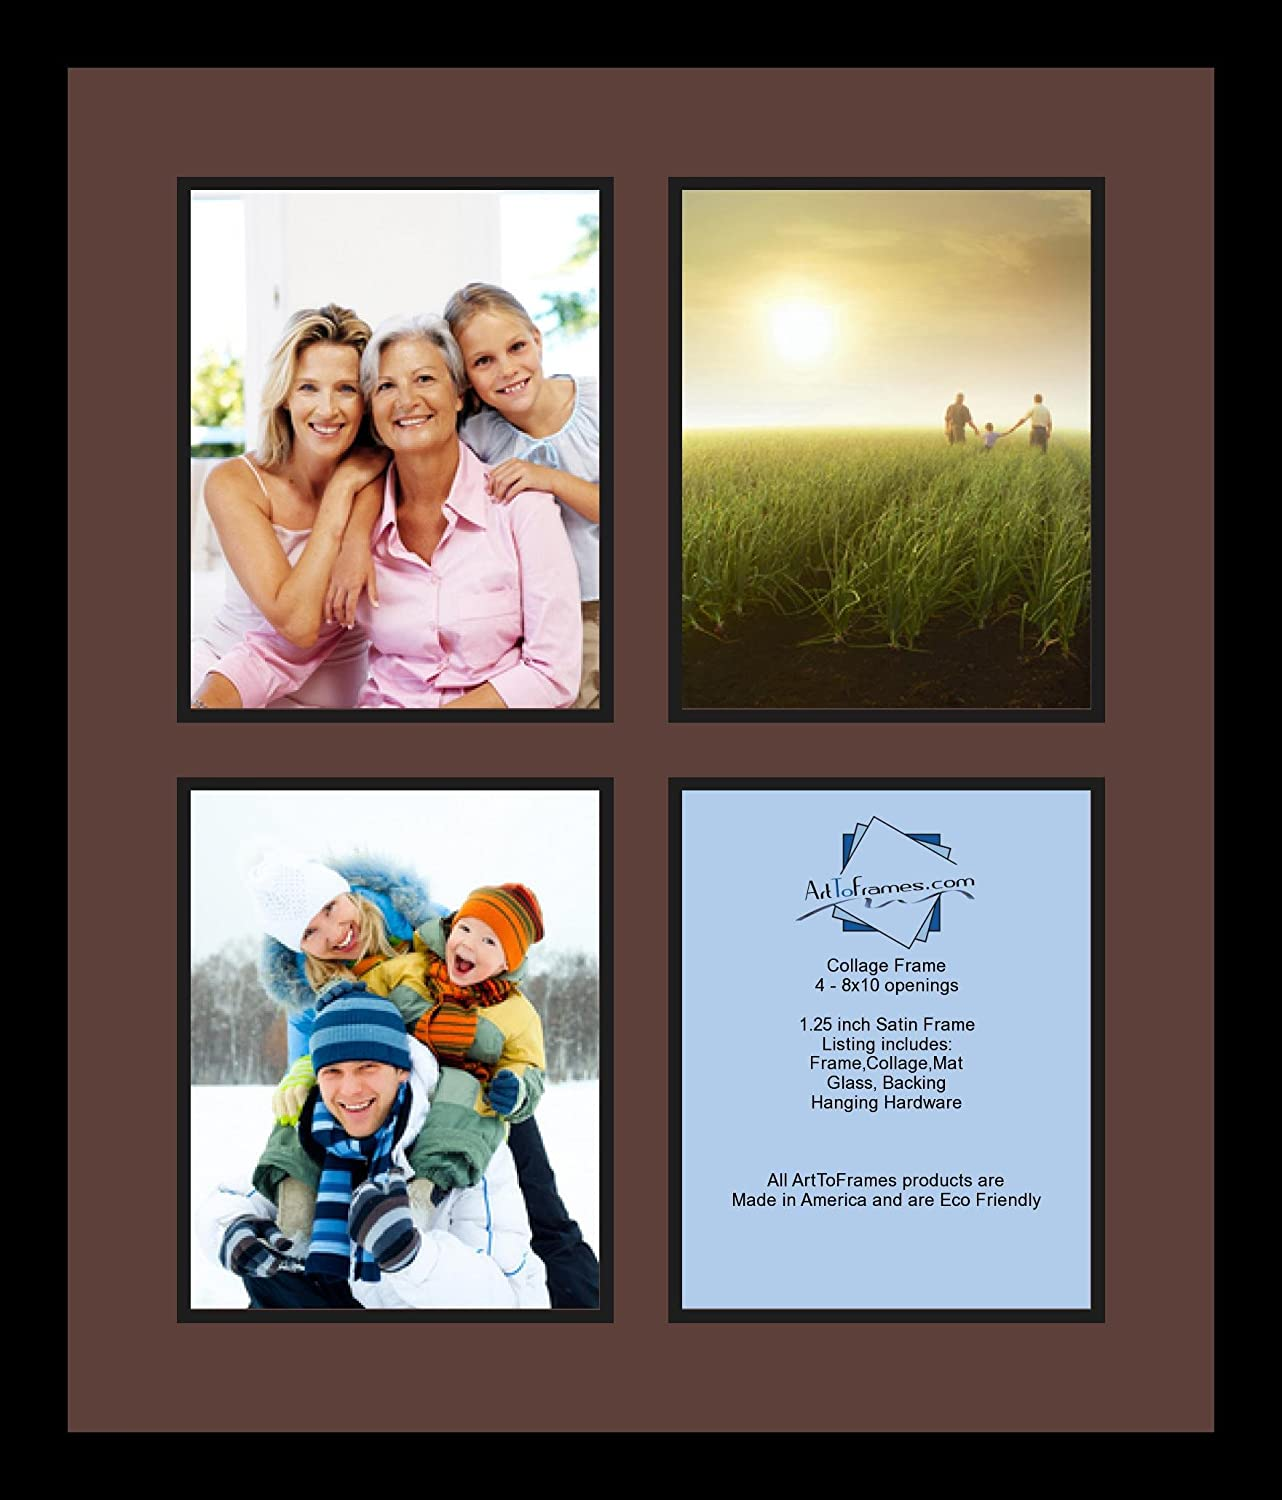 Amazoncom Arttoframes Collage Photo Frame Double Mat With 4